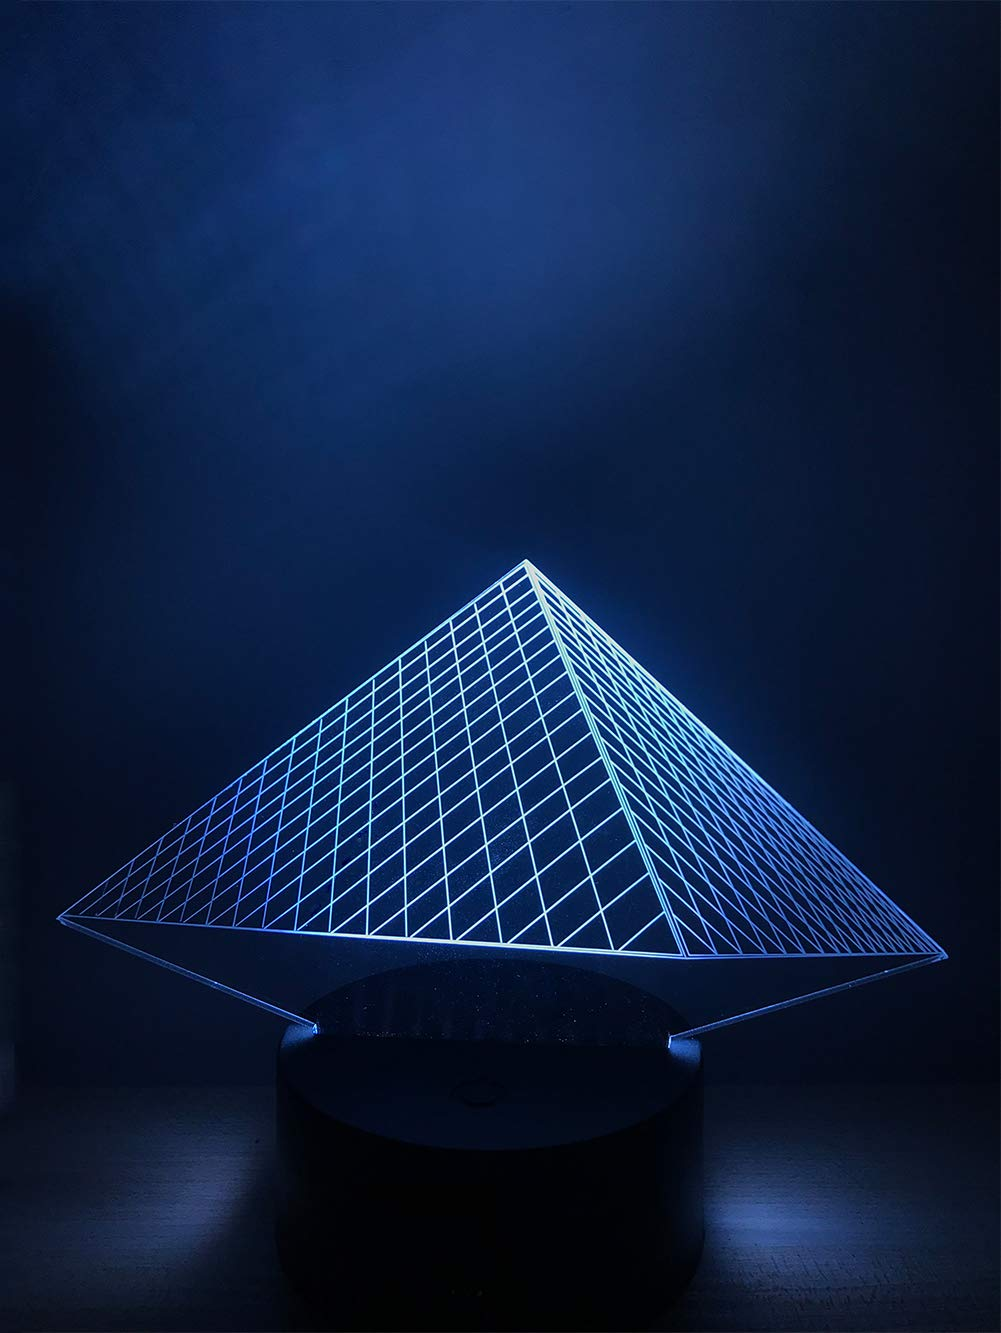 AWLIET Pyramid 3D Optical Illusion Creative Night Light, Colorful Color Touch USB Power Supply, Home Decoration/Gift / Sleep Aid Lamp